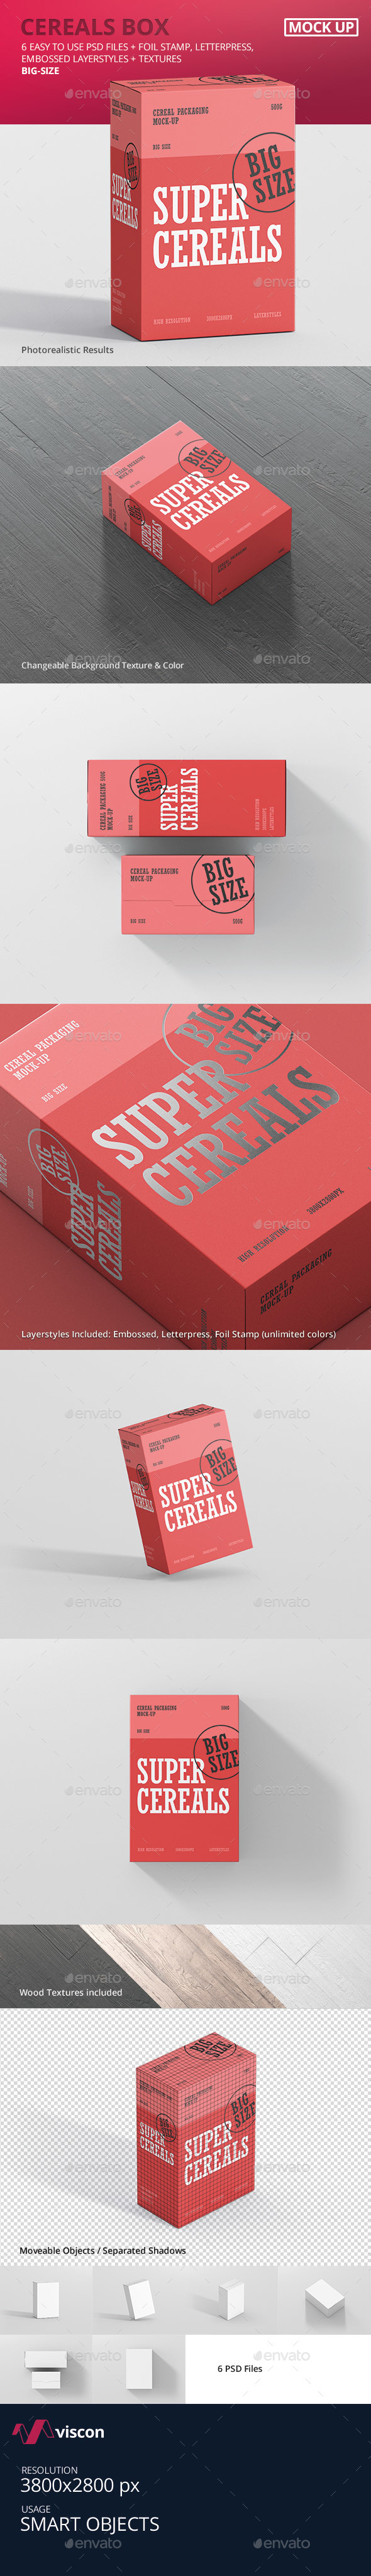 Cereals Box Mockup - Big Size - Food and Drink Packaging